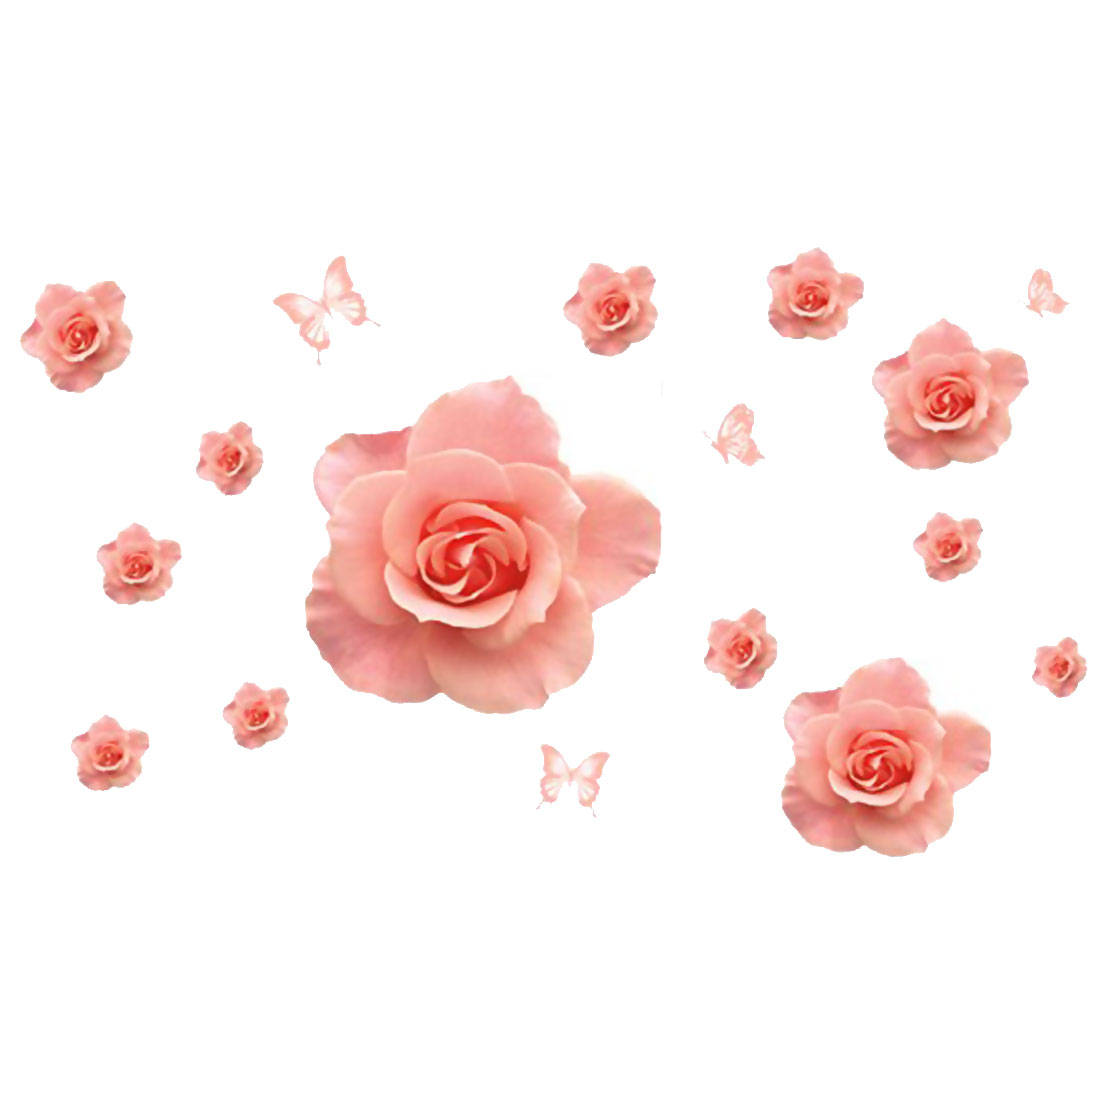 3D Rose Pattern Self-adhesive Removable Wall Sticker Paper Mural Ornament